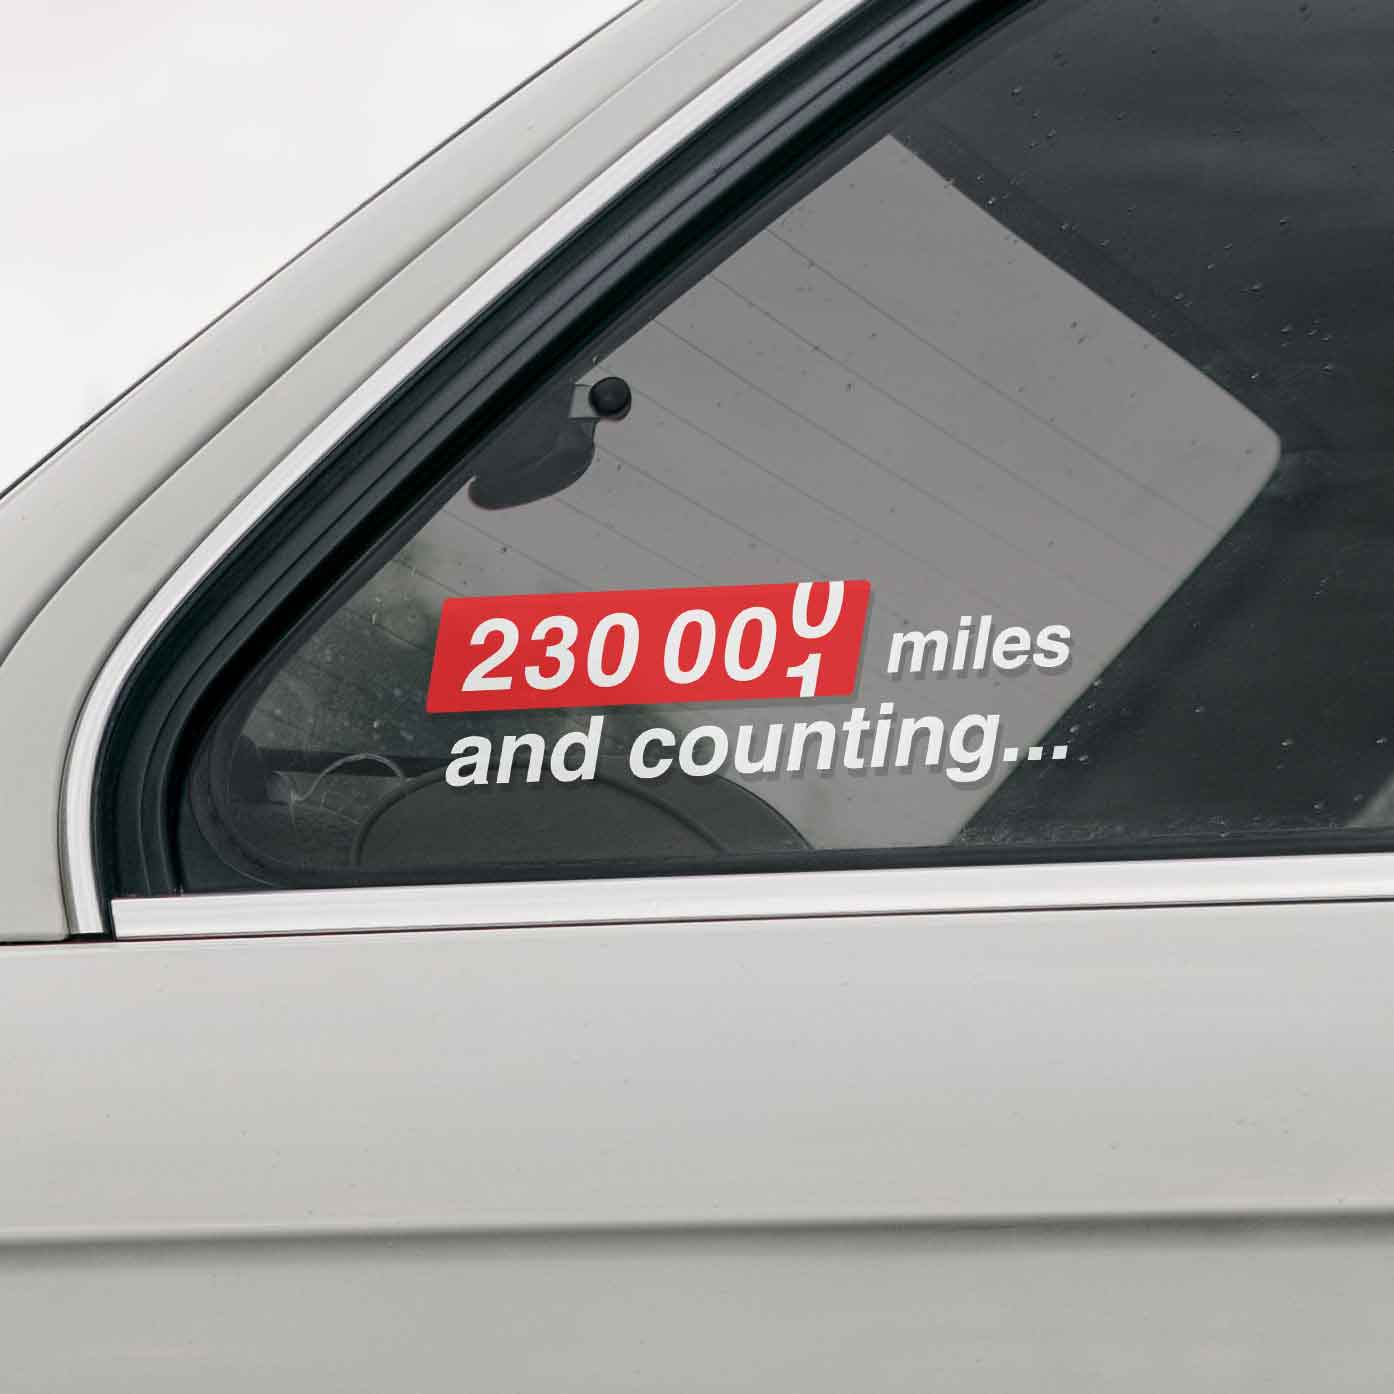 Custom mileage car sticker. For well-kept cars with impressive mileage that are in good hands.